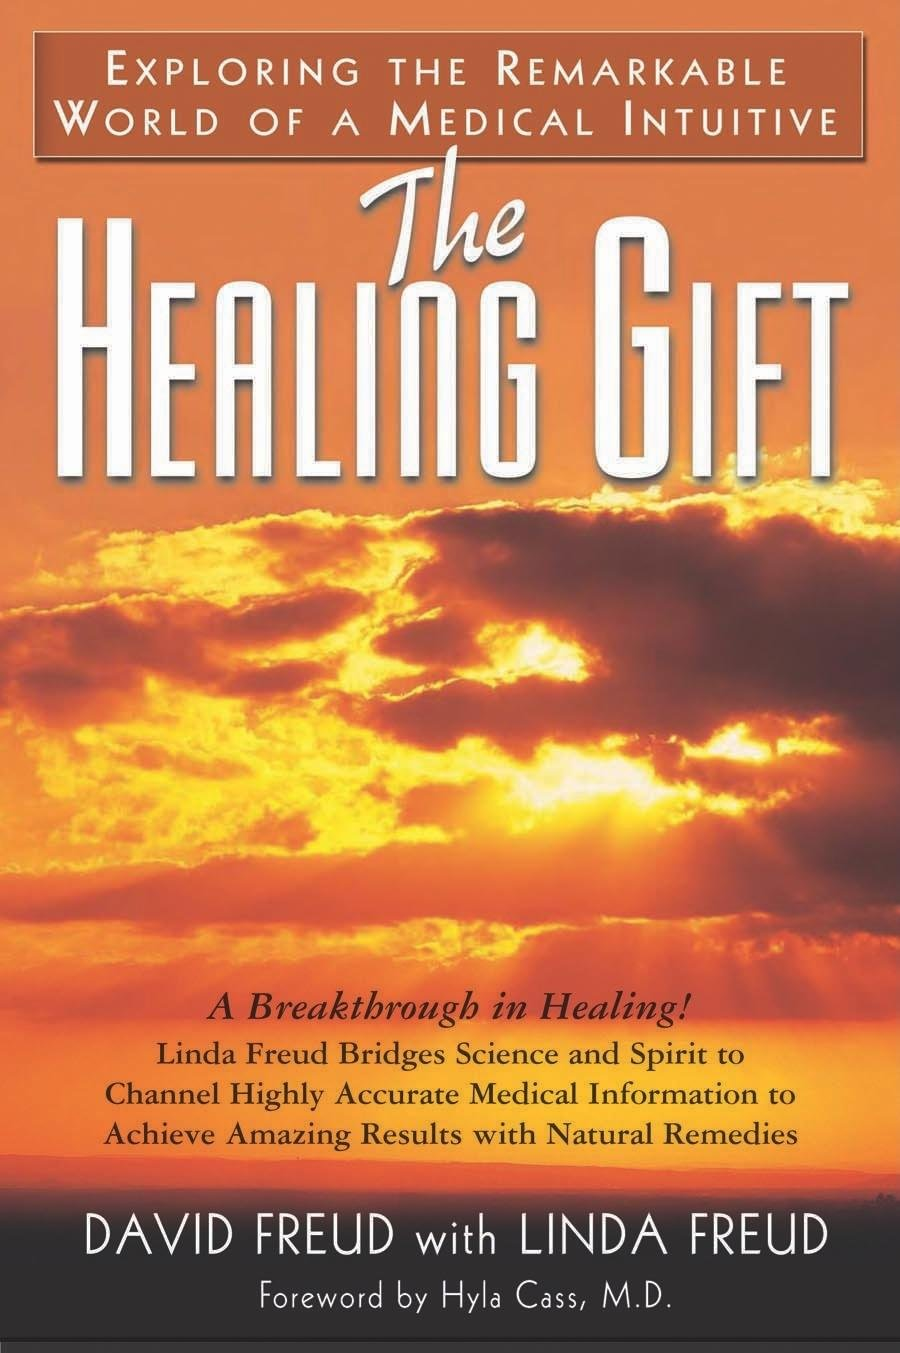 Healing Gift Remarkable Medical Intuitive